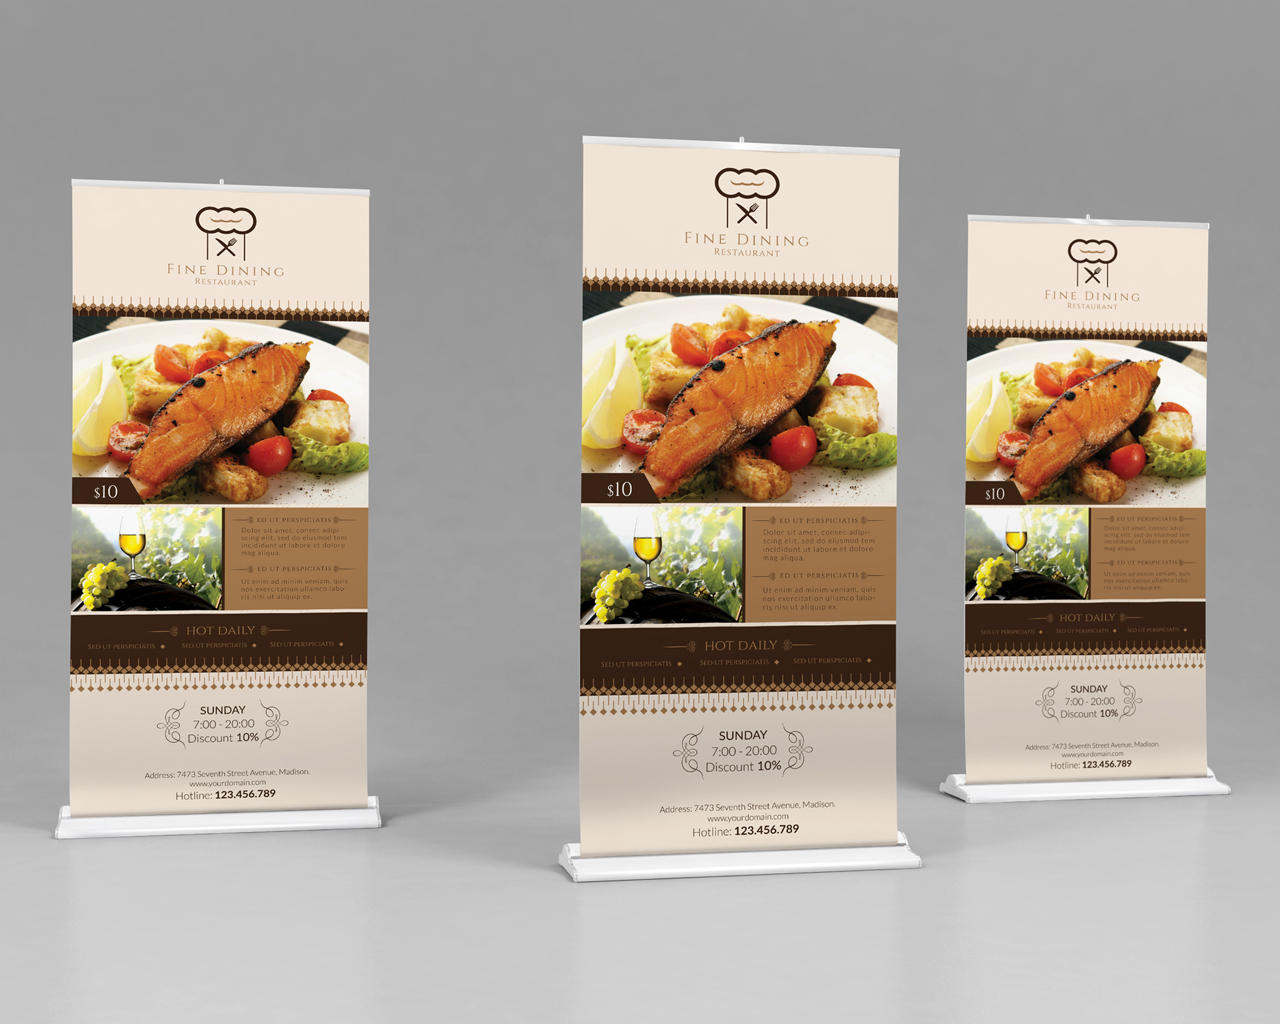 Roll-Up Banners Design by Wutip - 101981